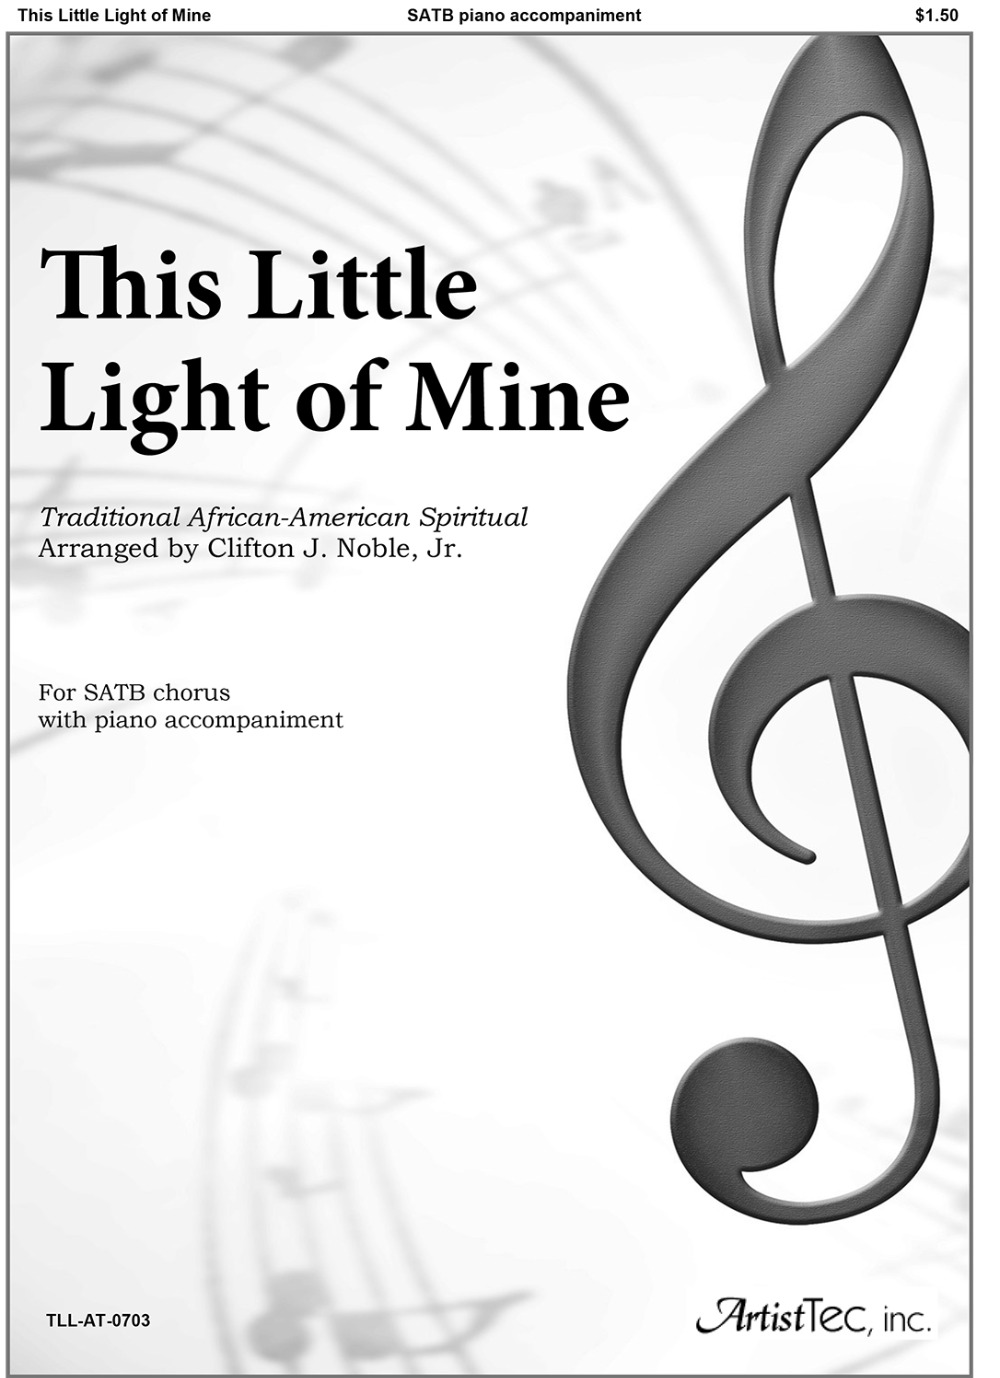 This Little Light of Mine (SATB)